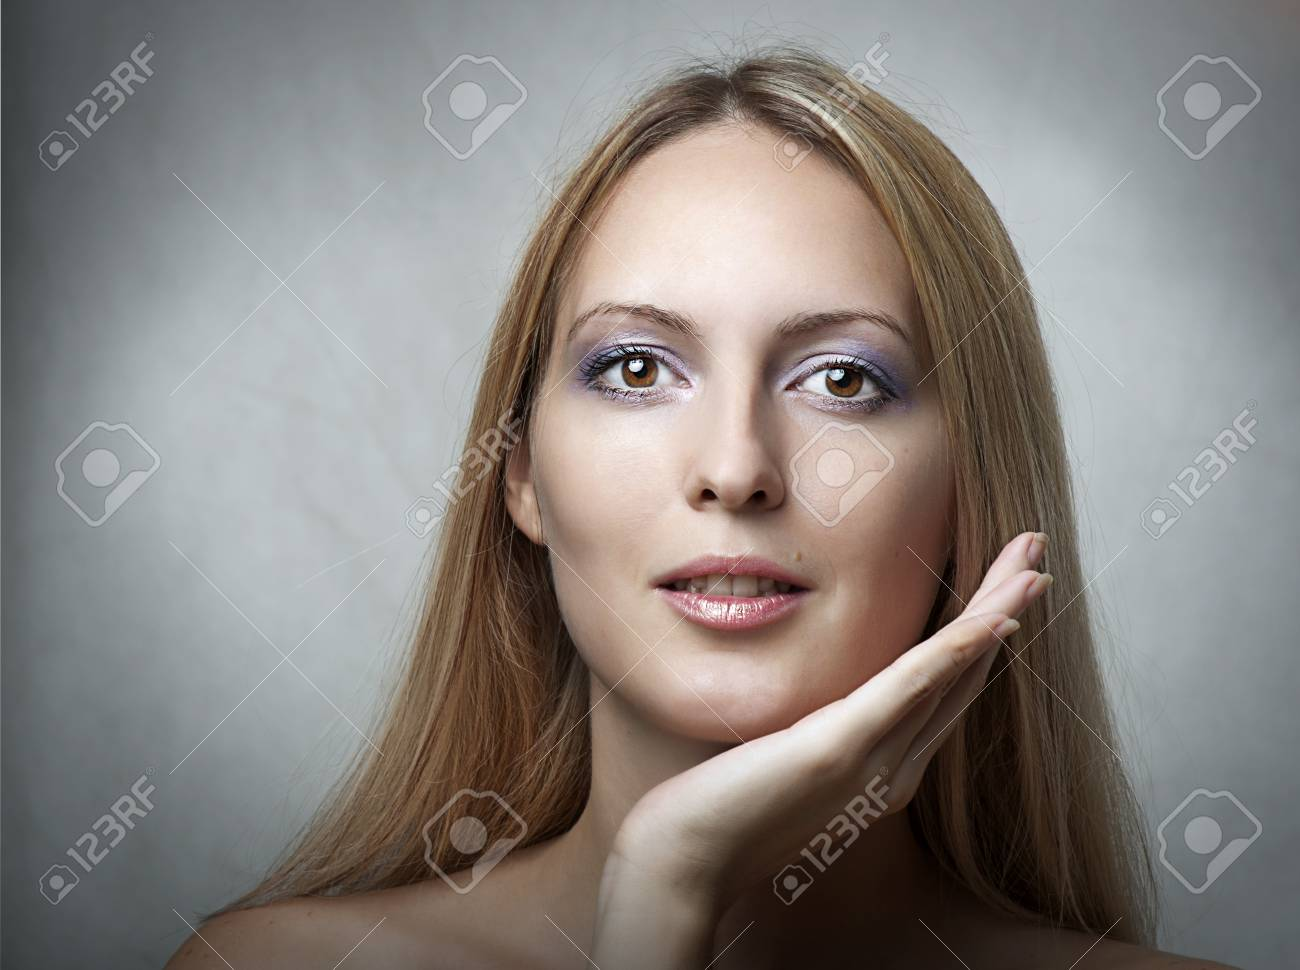 Beauty portrait of young elegant cute model. Face closeup with natural makeup Stock Photo - 10421349